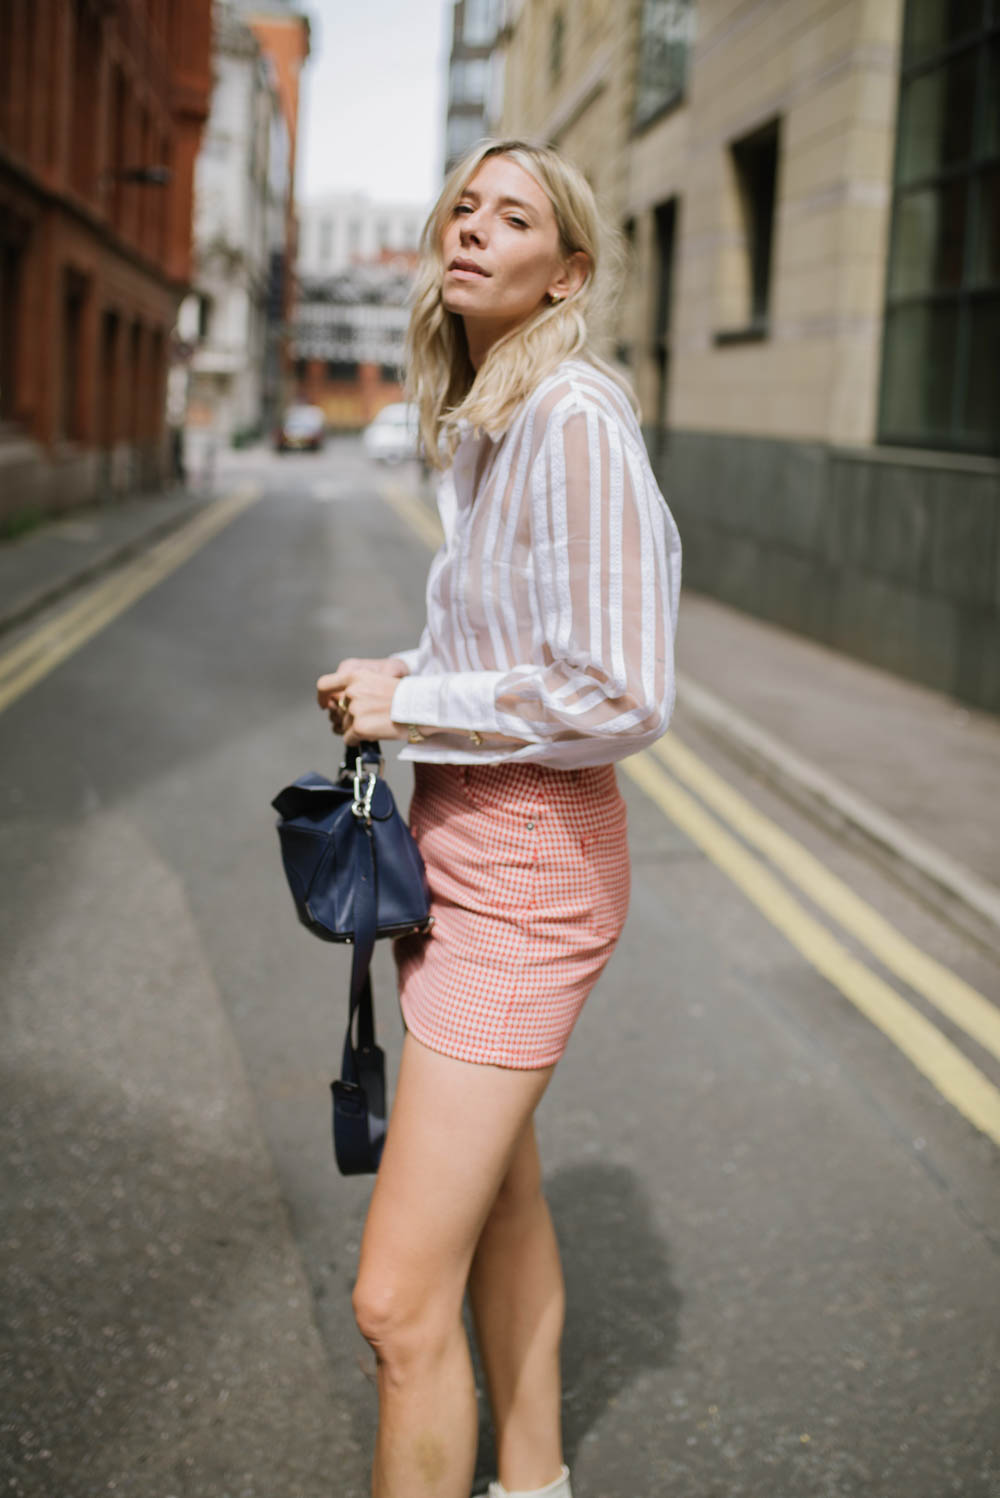 Red-Topshop-skirt-final-edits-11.jpg